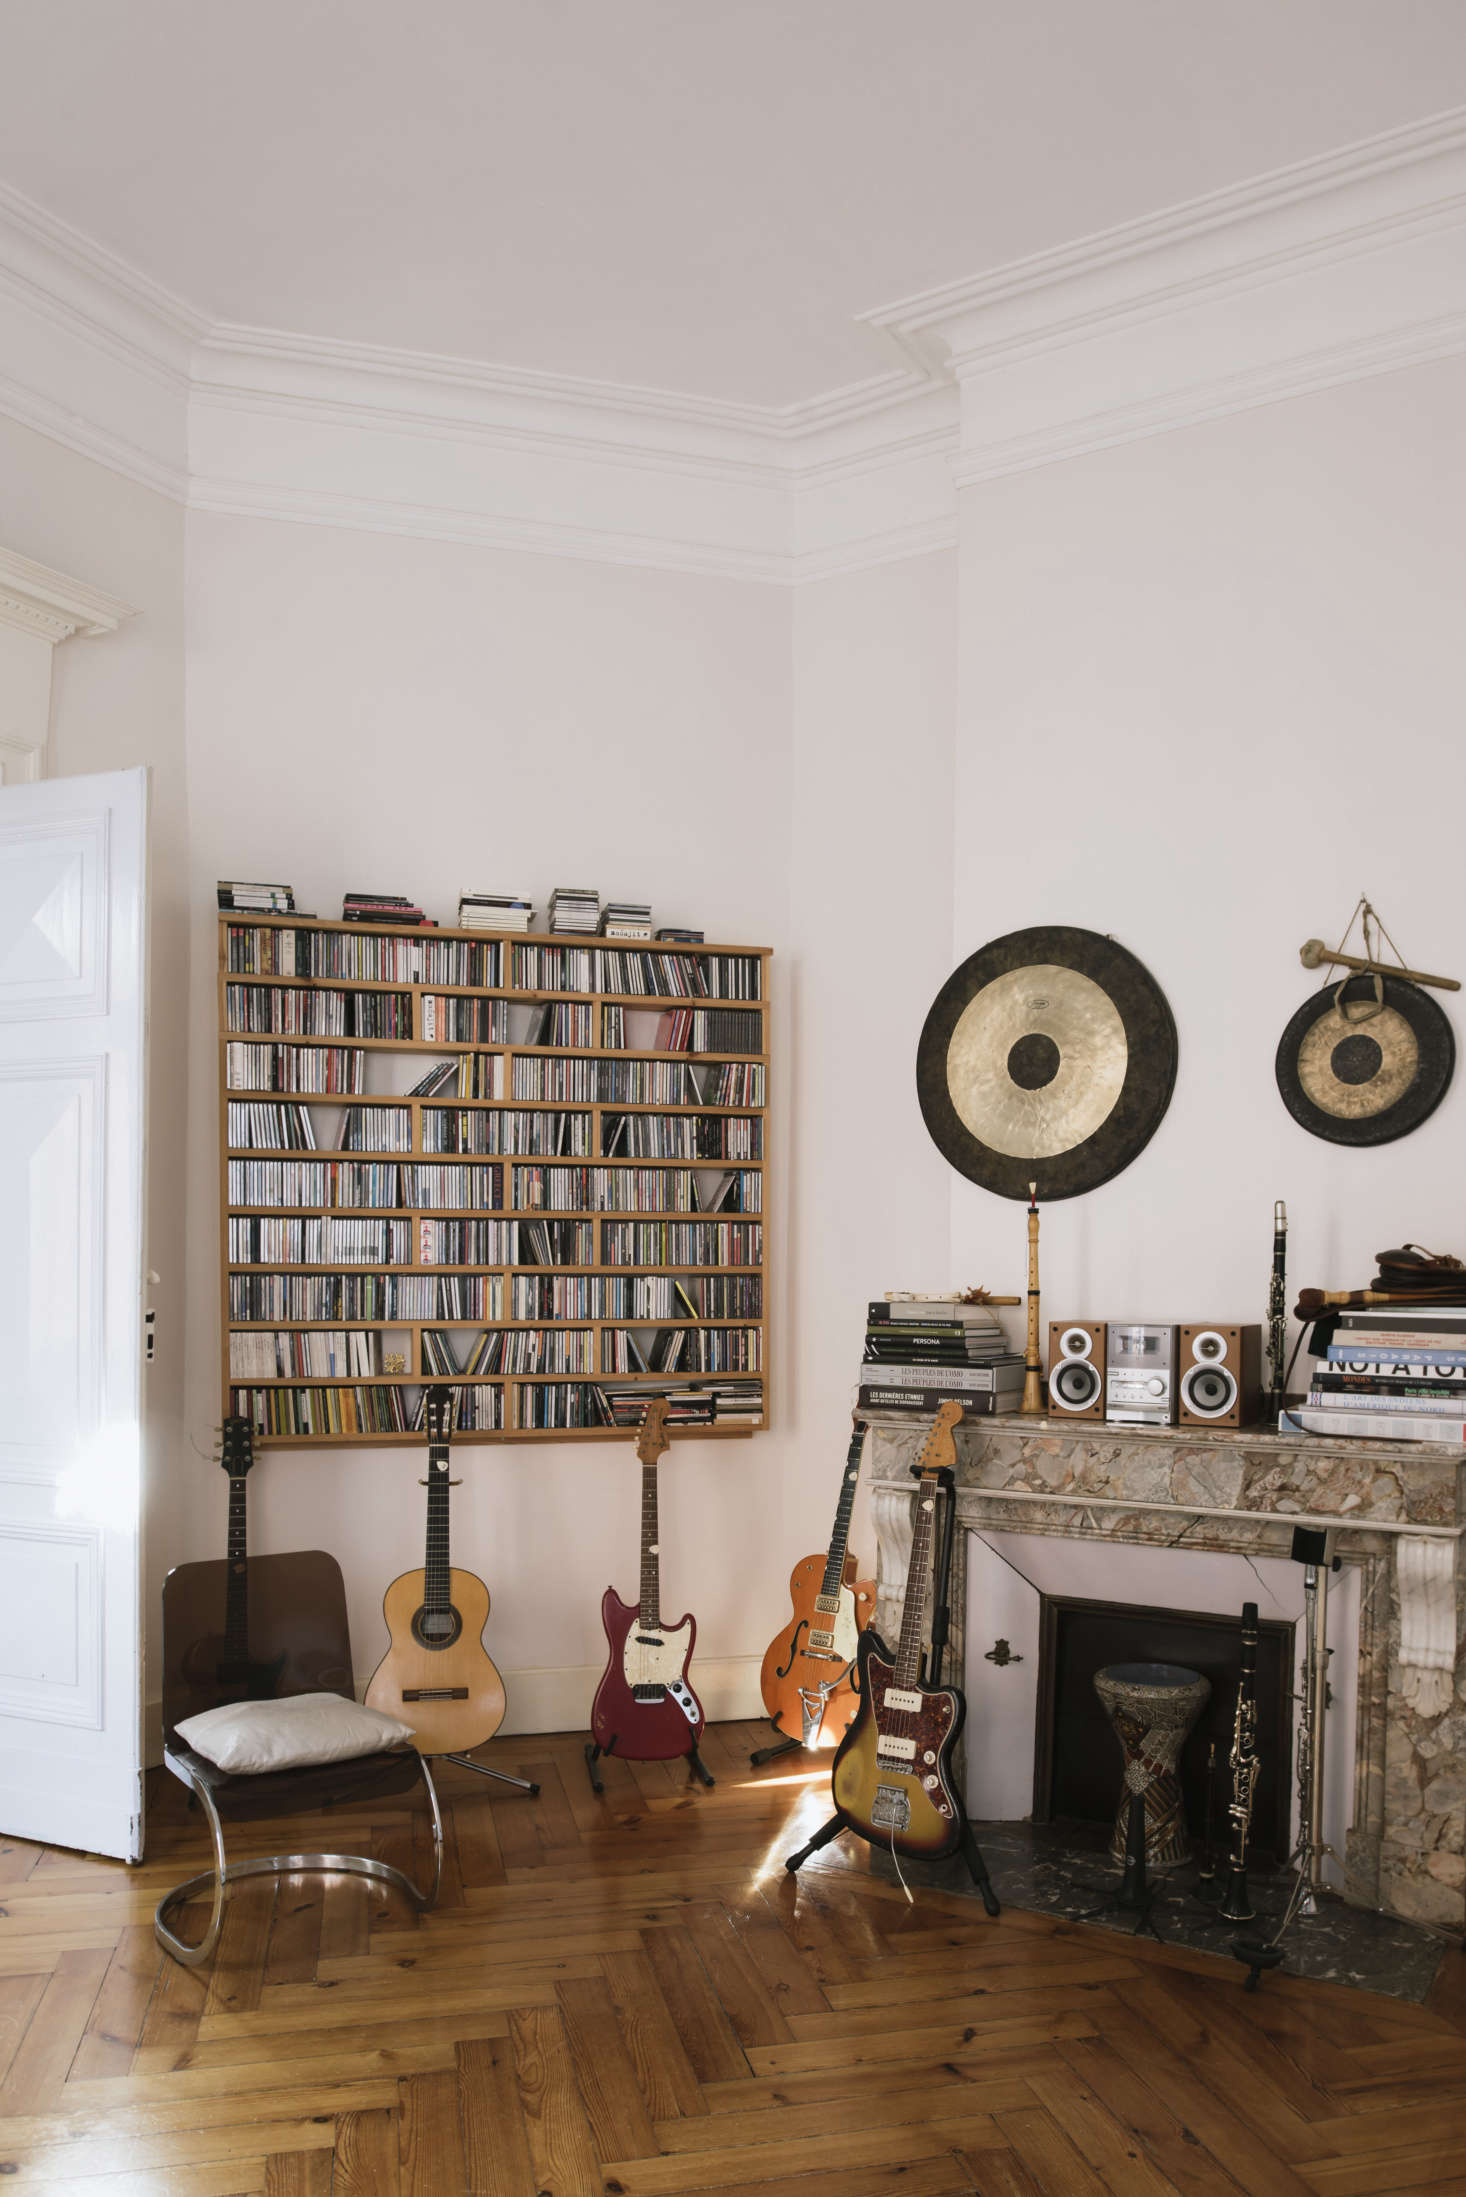 A music room for the musicians in the family: Christophe, Kélit, and Solelh. Sathal built the shelves herself.